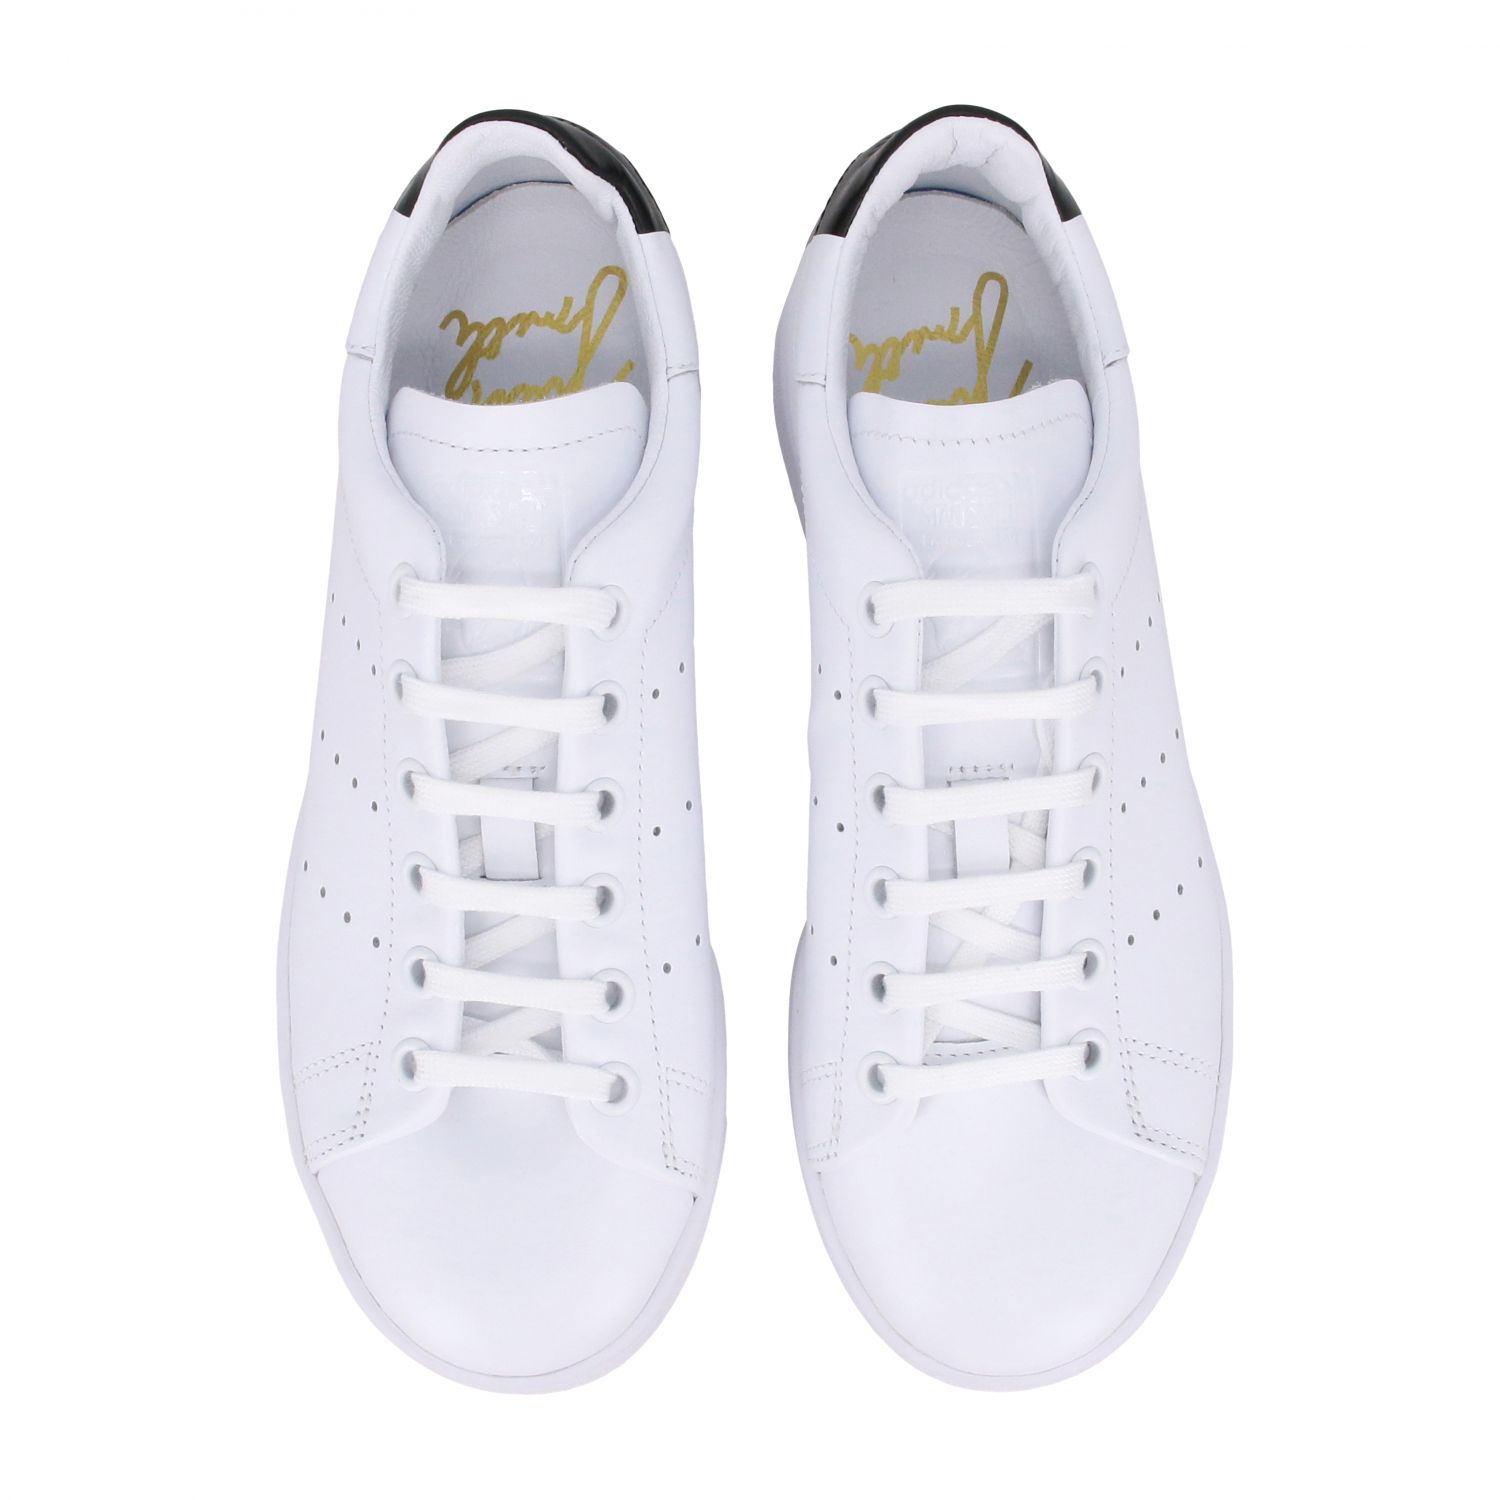 Sneakers Adidas Originals: Shoes women Adidas Originals white 3